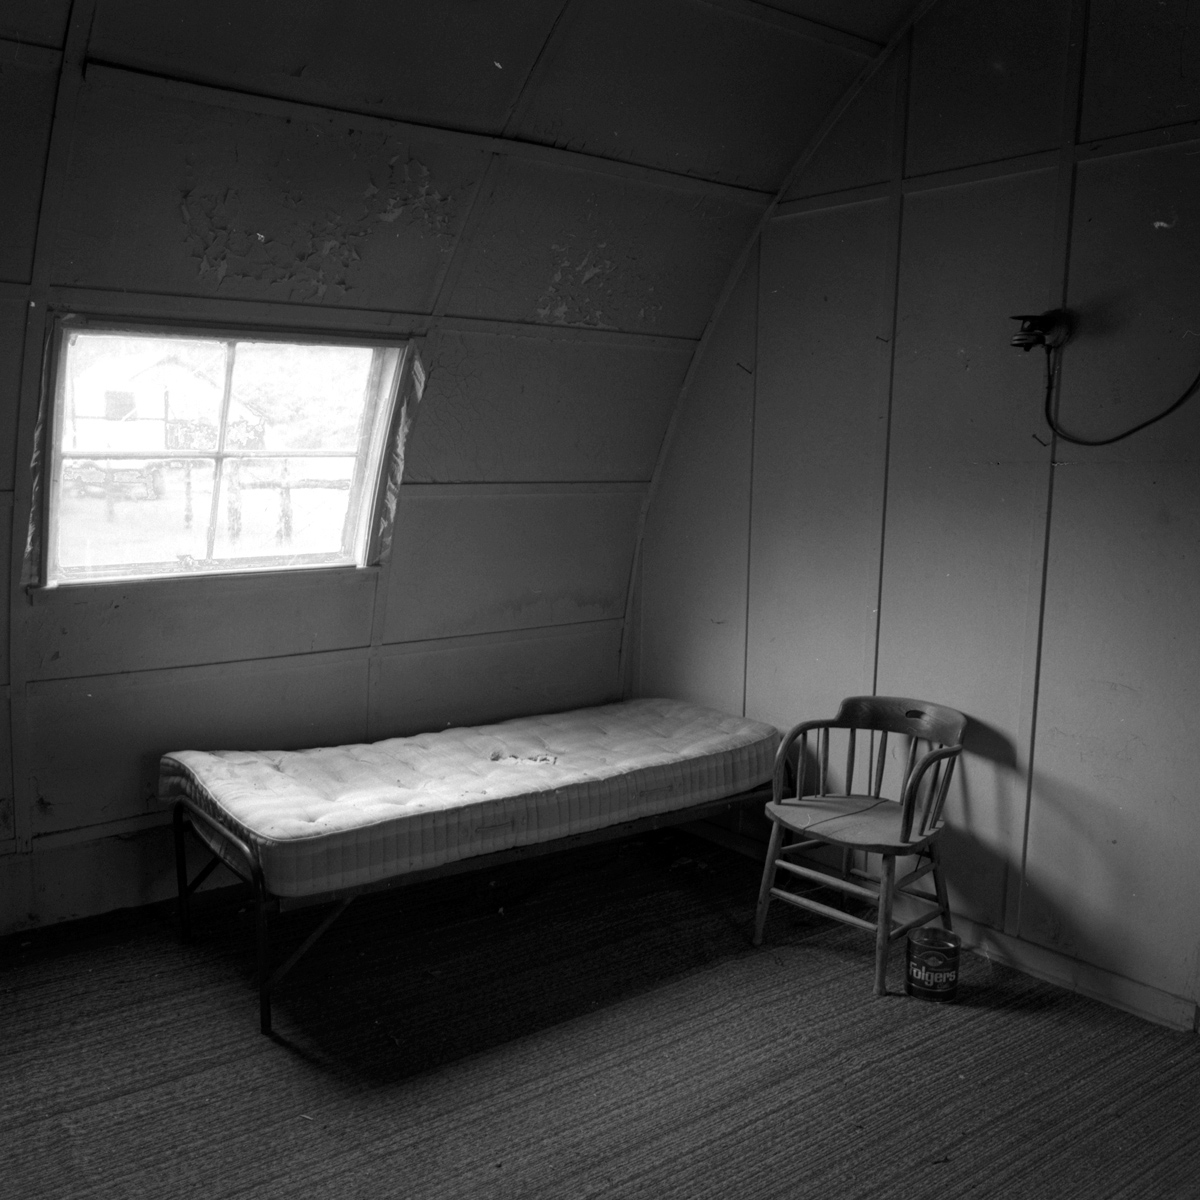 Empty Bunk, IL Ranch, NV